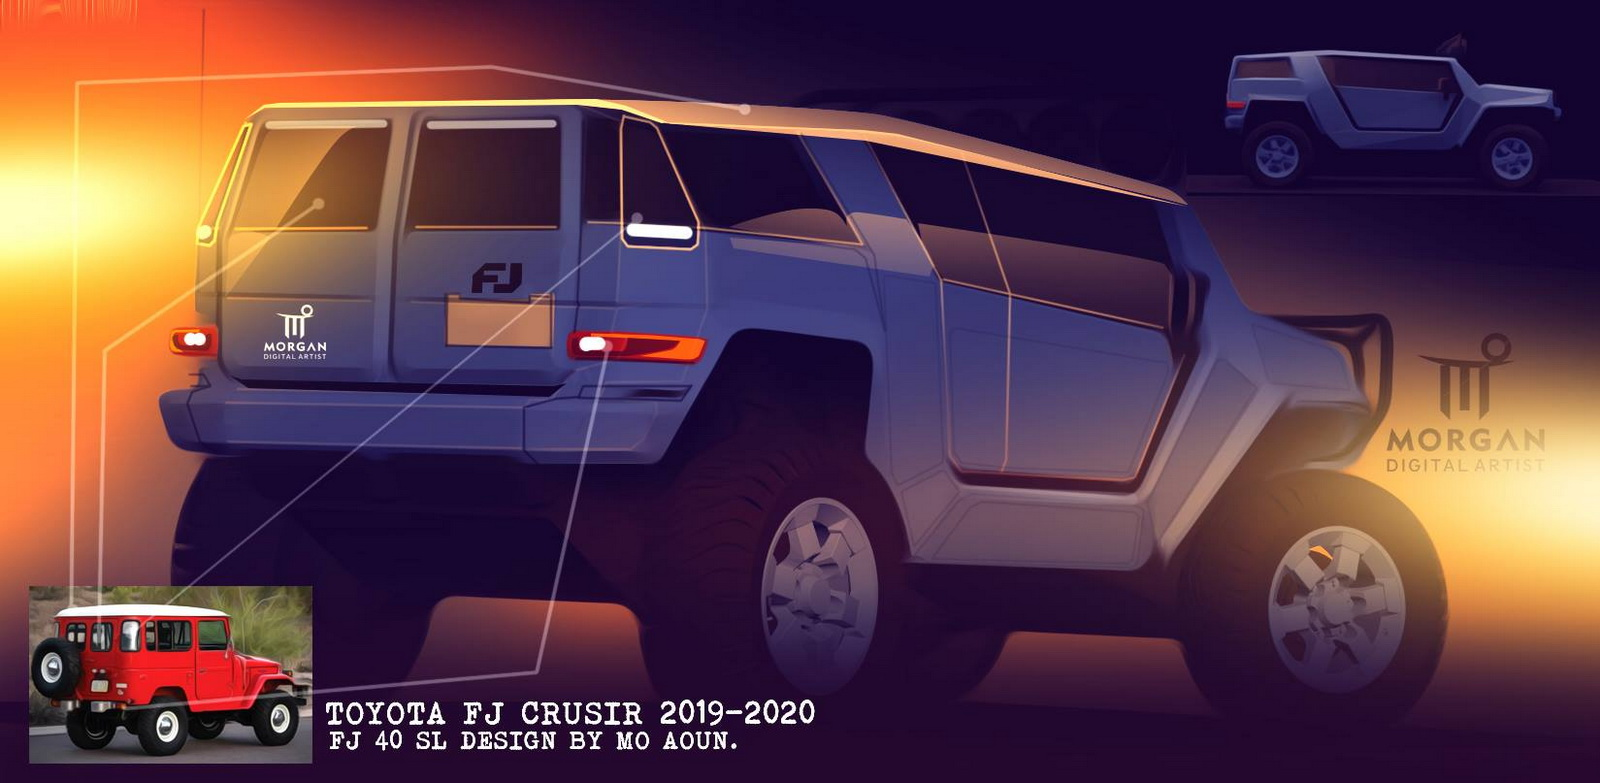 We Need To Get Back The U In Suv Mohammed Aoun And His Fog Light Switch Page 2 Toyota Fj Cruiser Forum 4 48